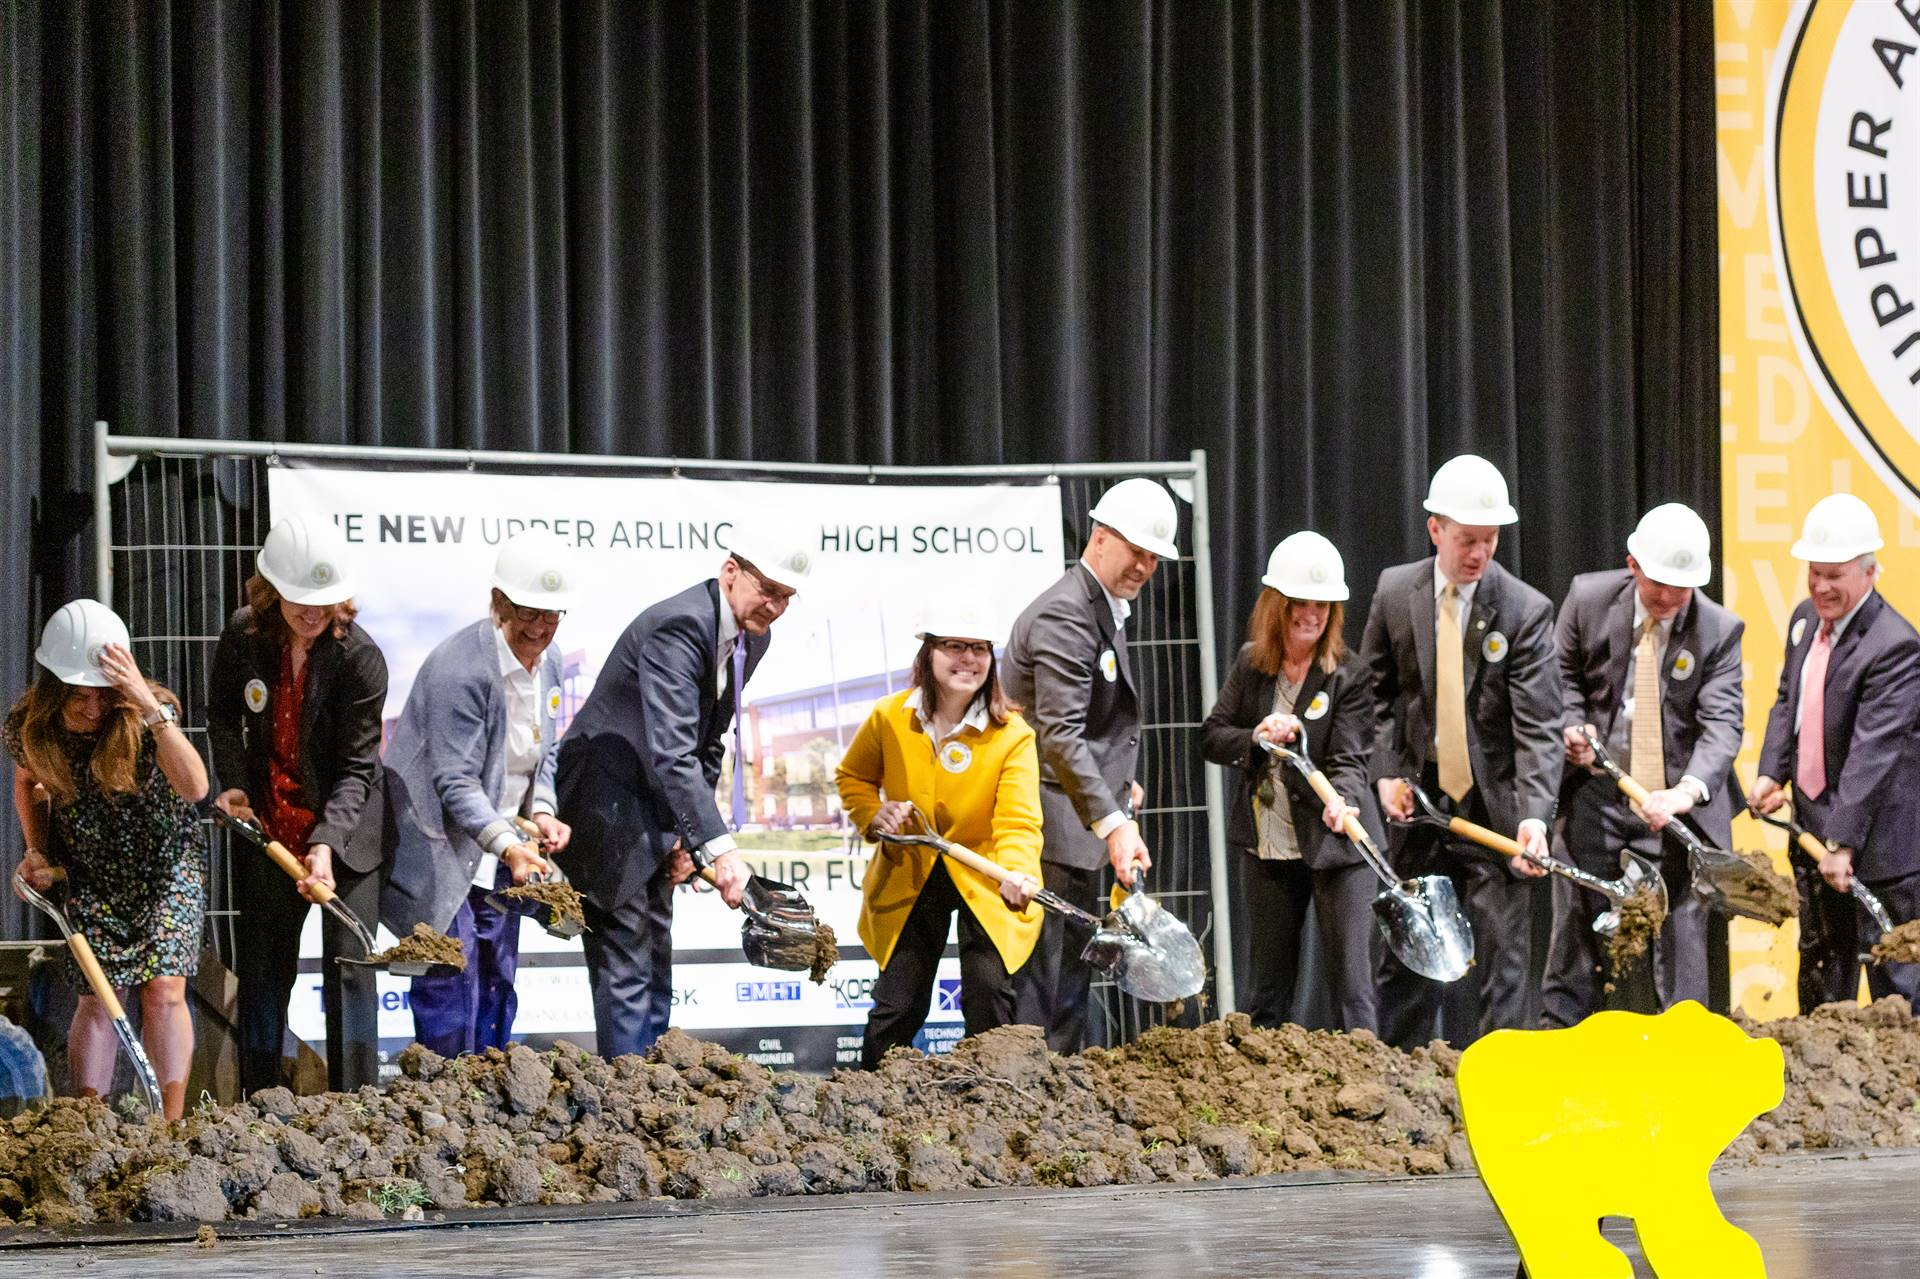 The Board of Education and Upper Arlington Schools administration breaking ground